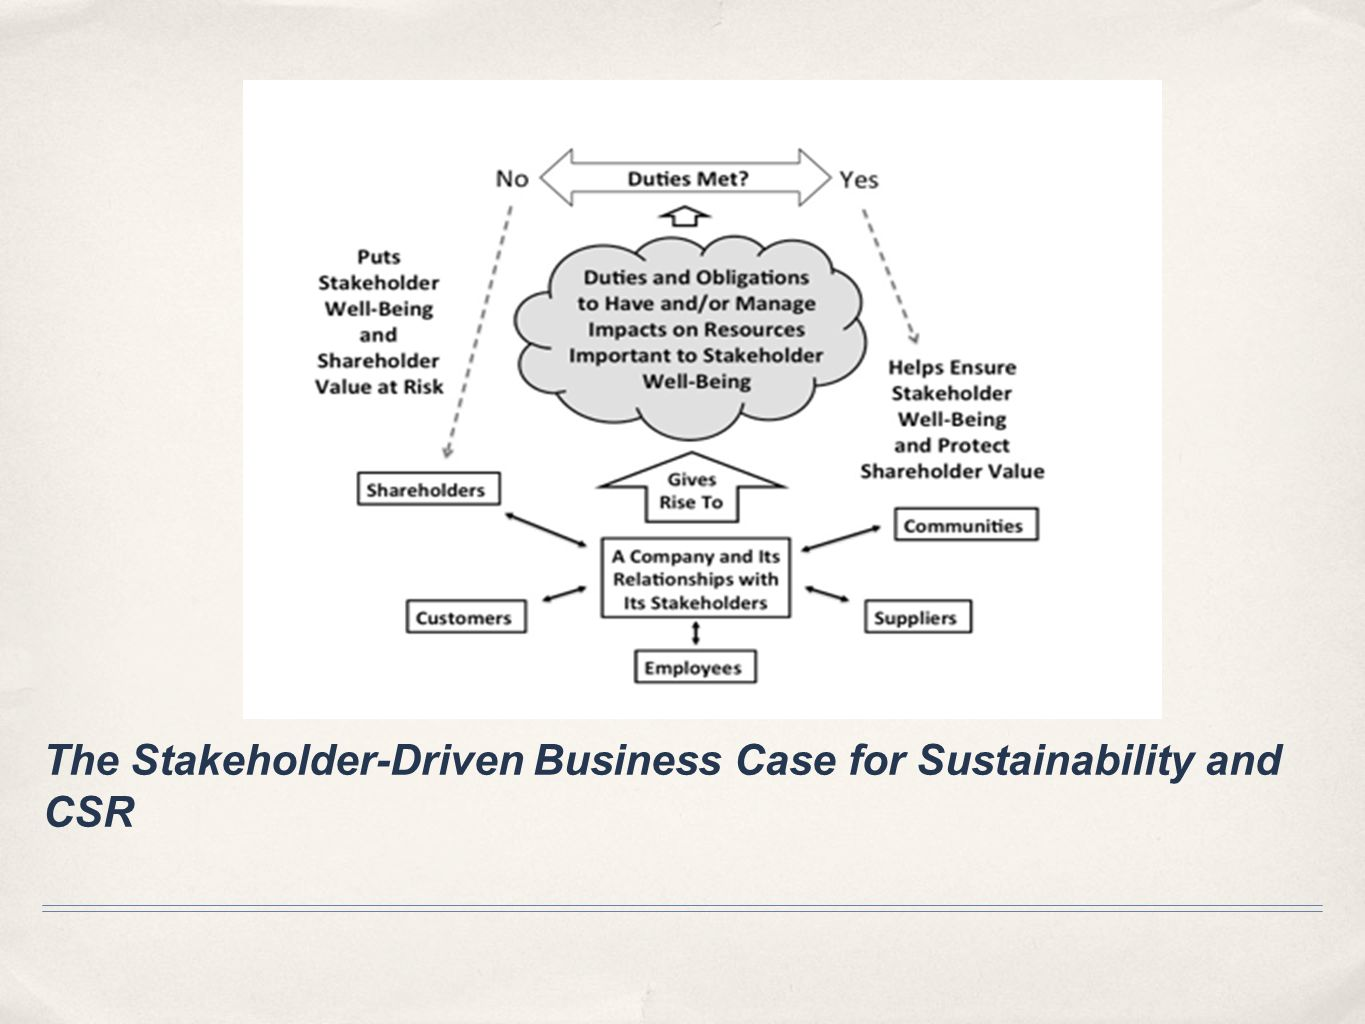 The Stakeholder-Driven Business Case for Sustainability and CSR